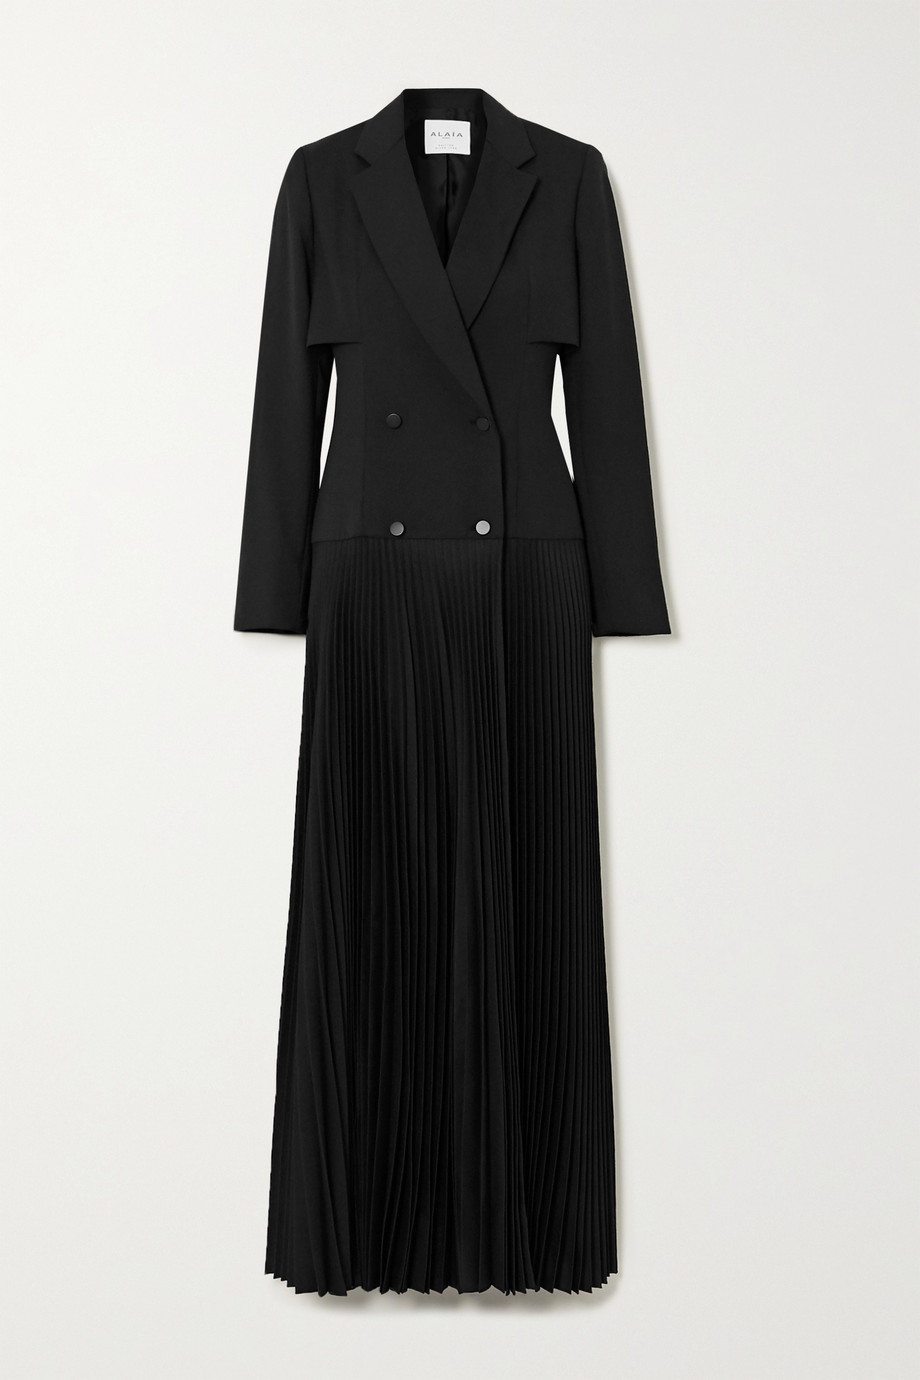 Alaïa Double-breasted pleated woven maxi dress